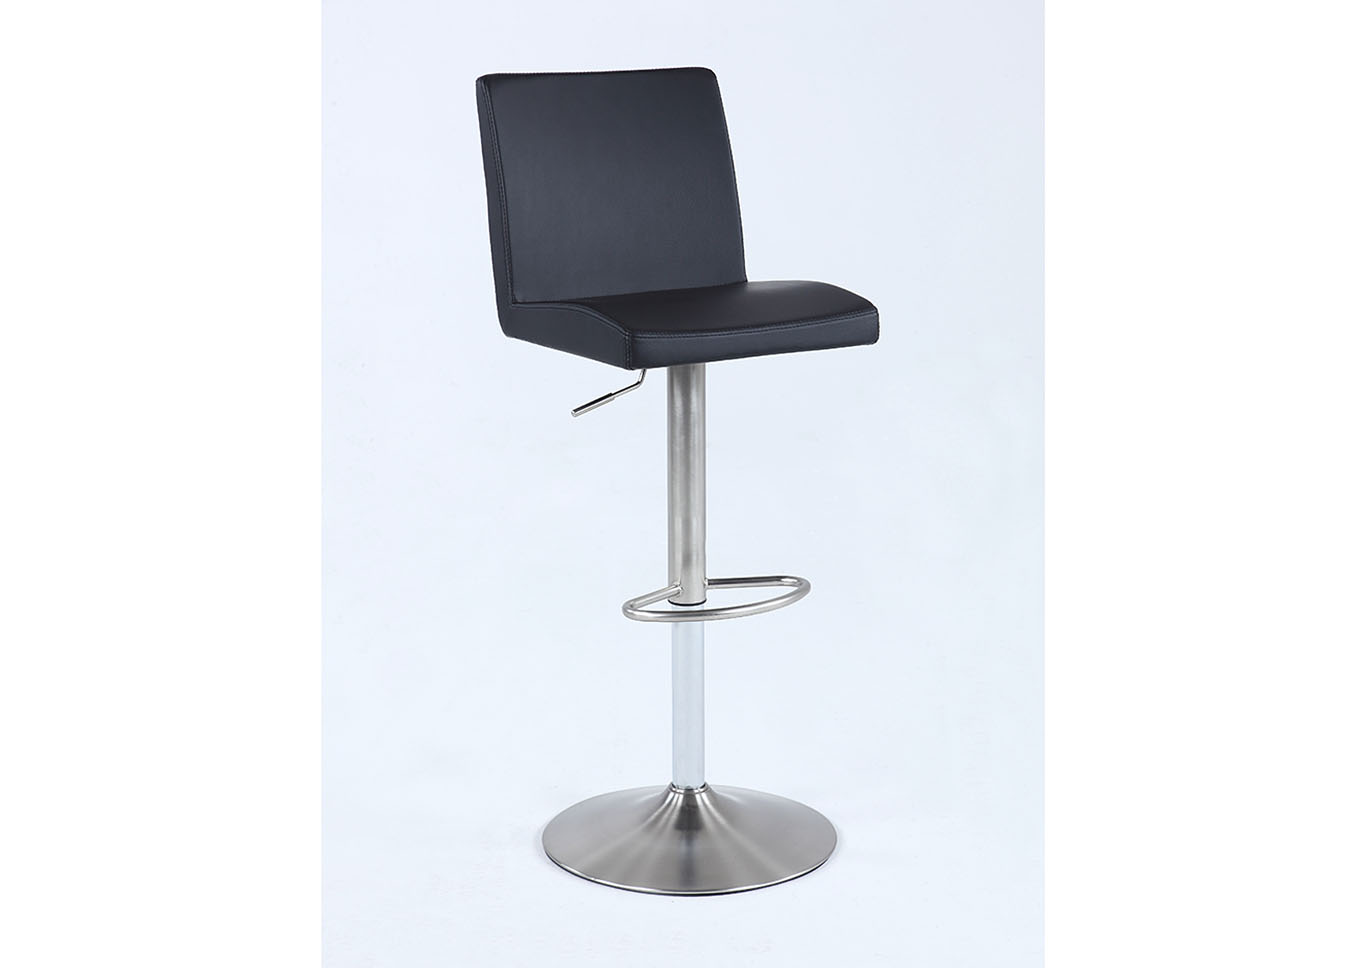 Black Pneumatic Swivel Low Back Stool,Chintaly Imports